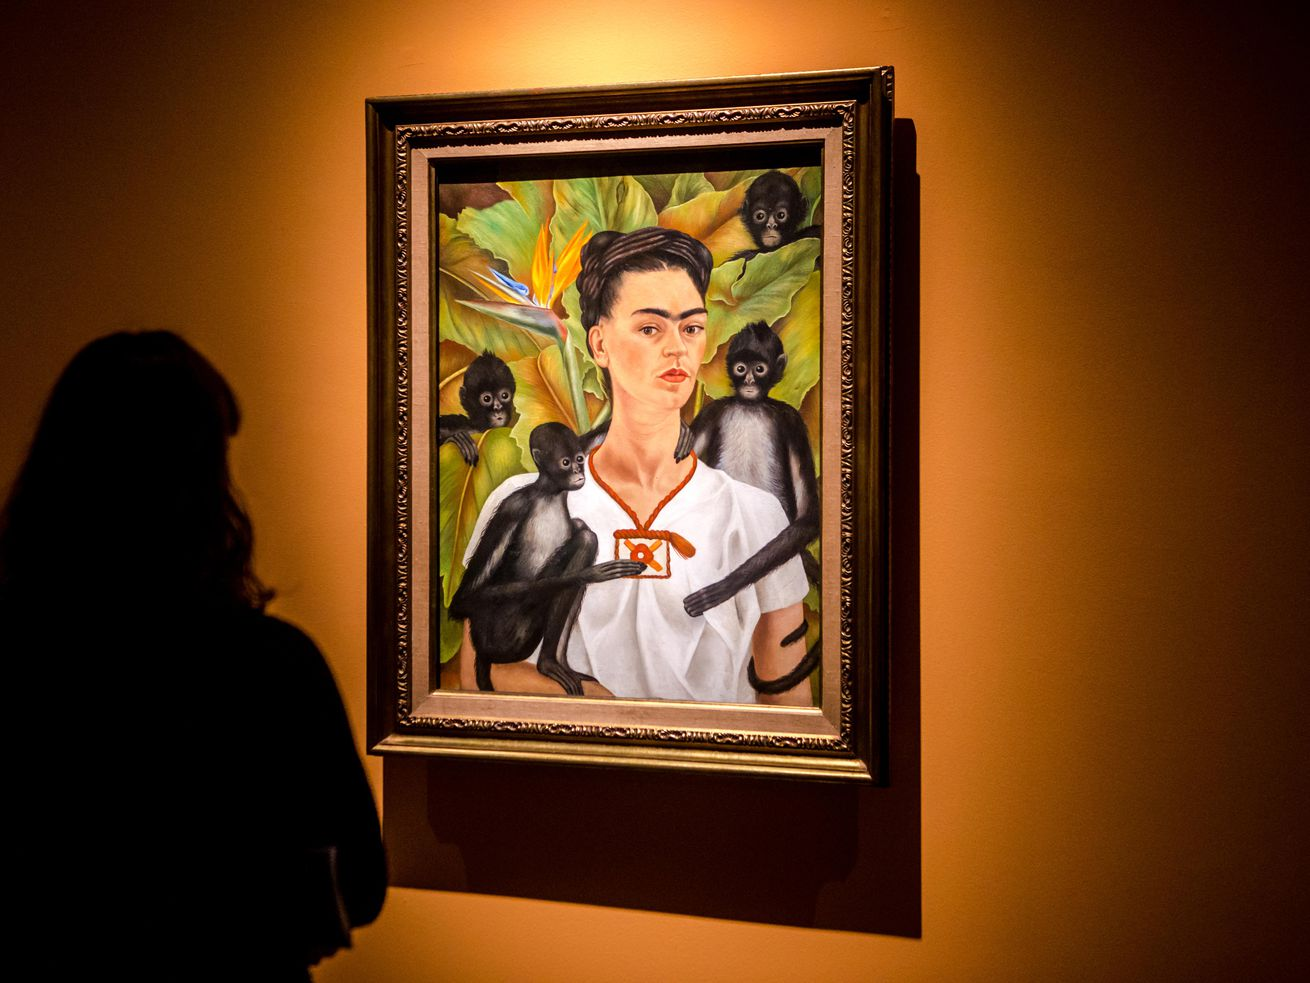 Frida Kahlo, All the Cool Girls, and Me